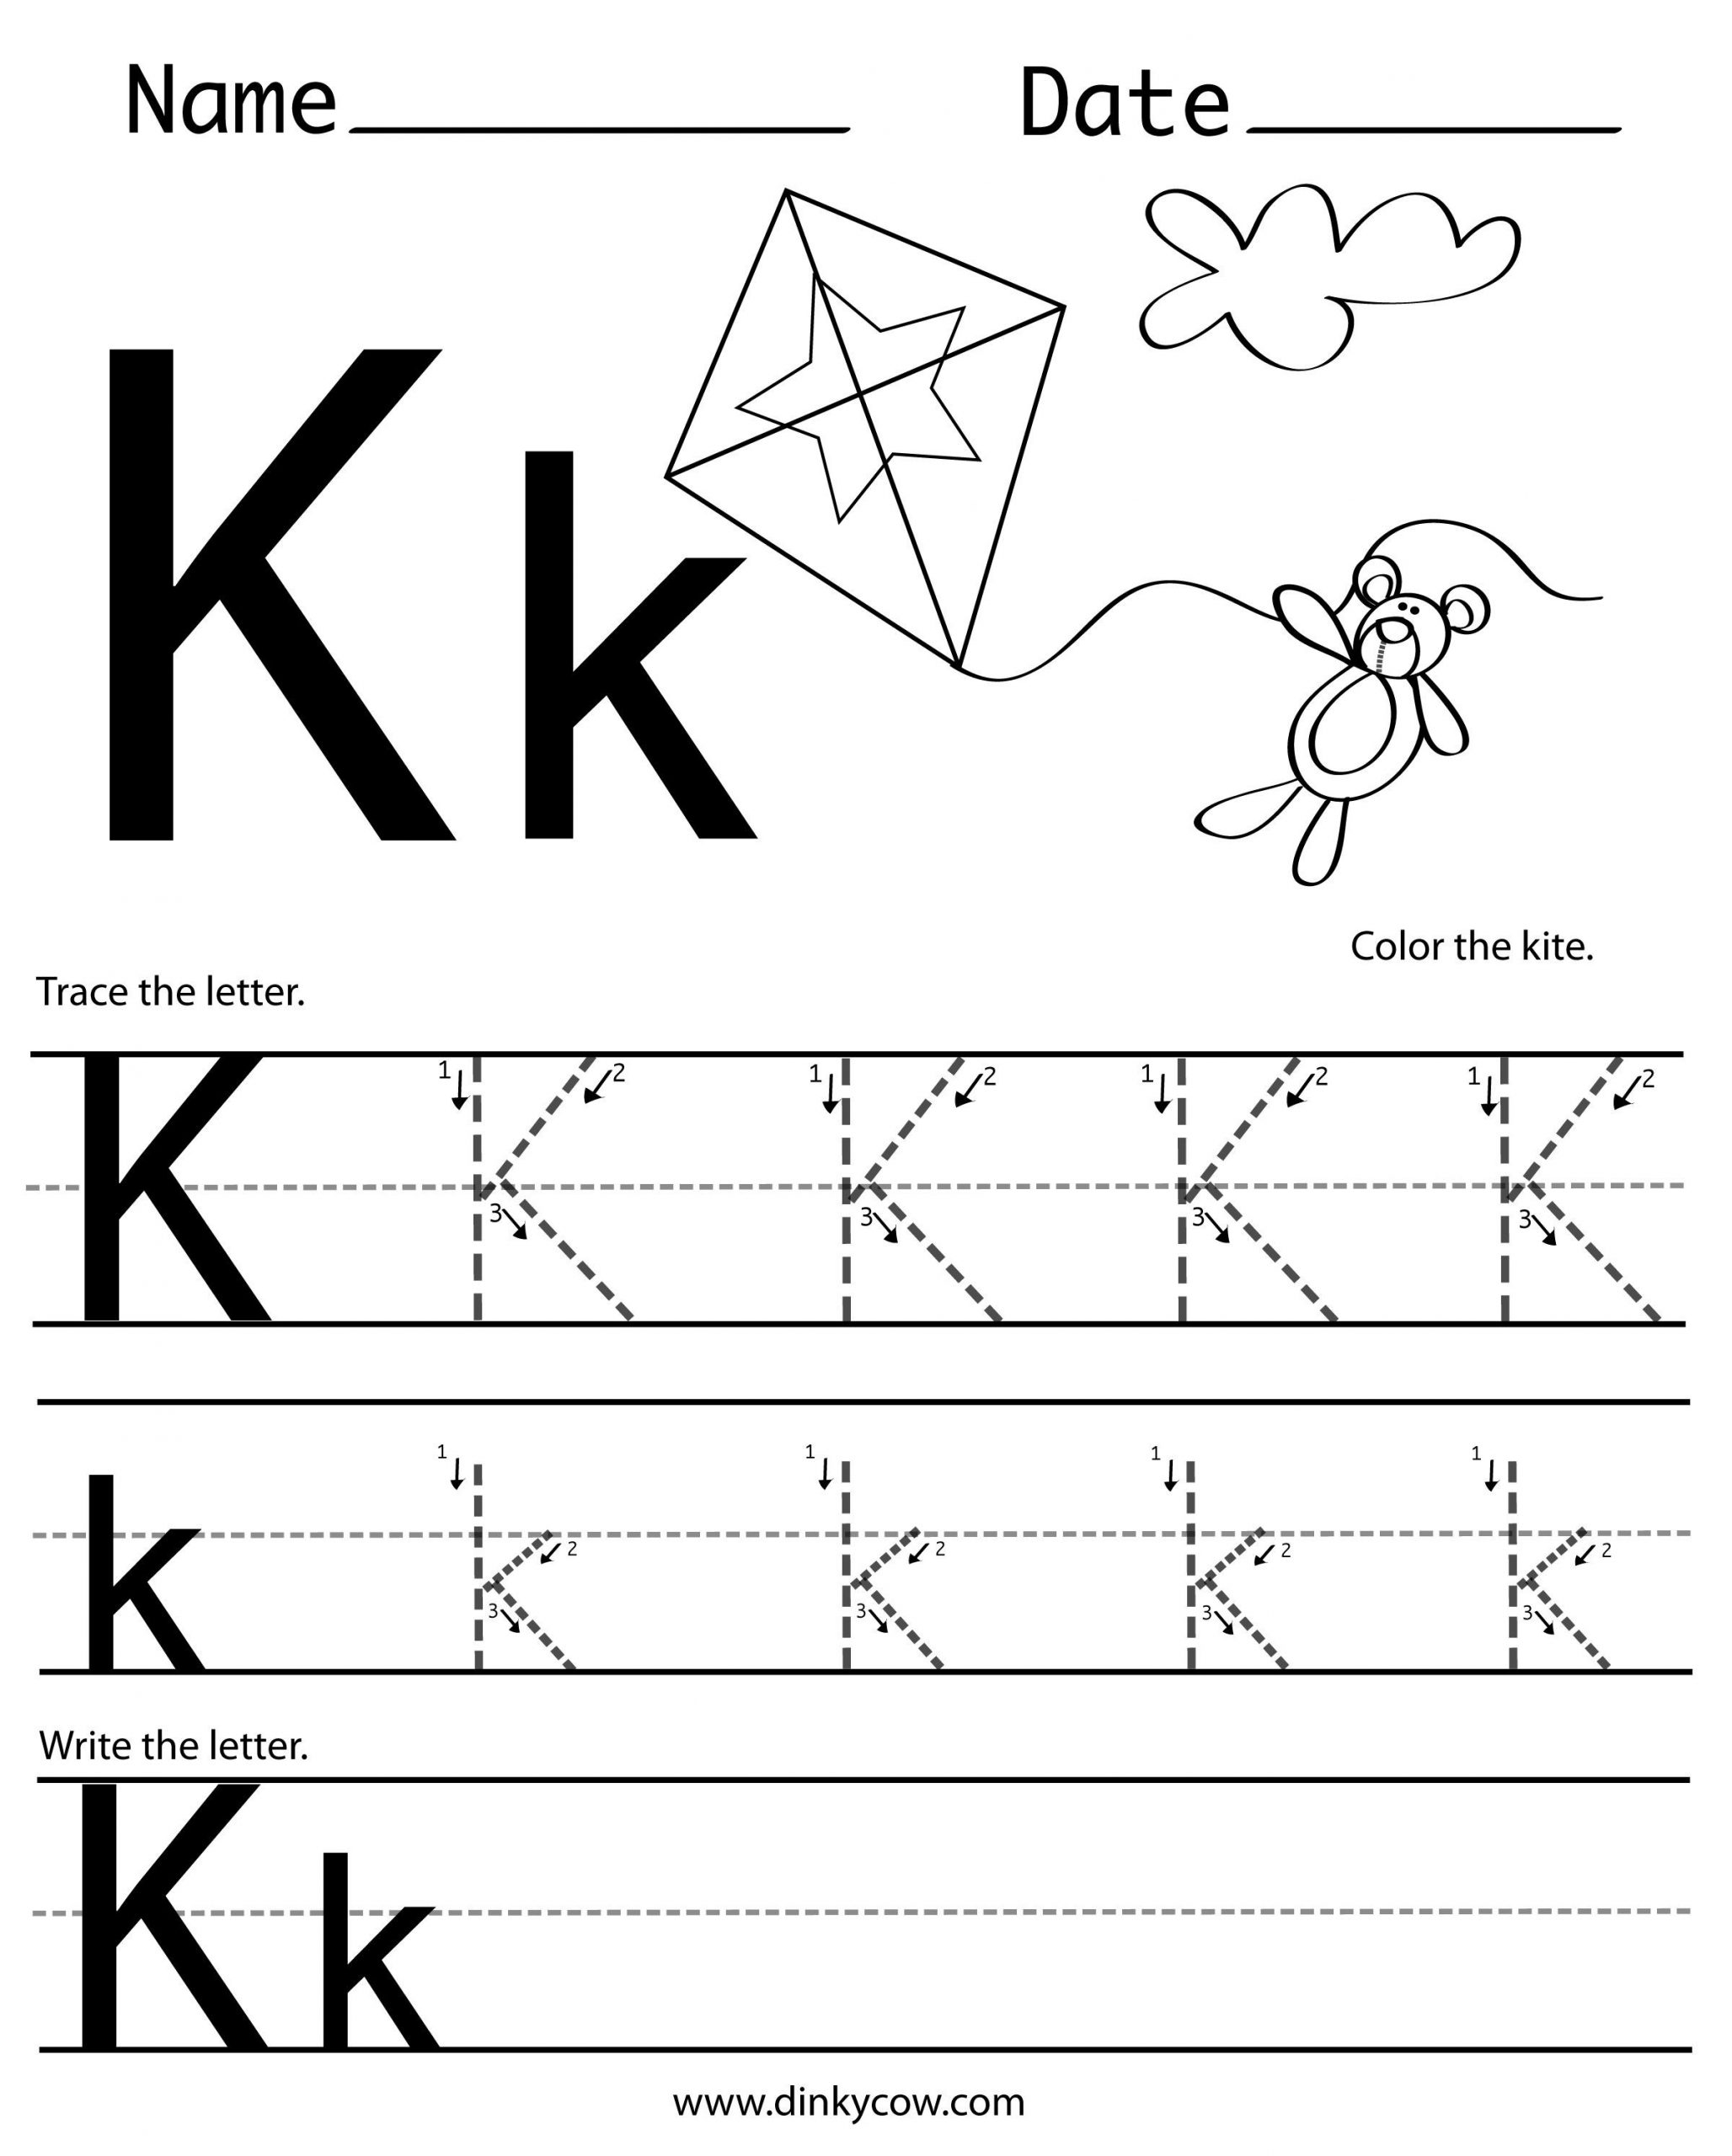 Letter K Tracing Worksheets Preschool K Free Handwriting Worksheet Print 2 400—2 988 Pixels